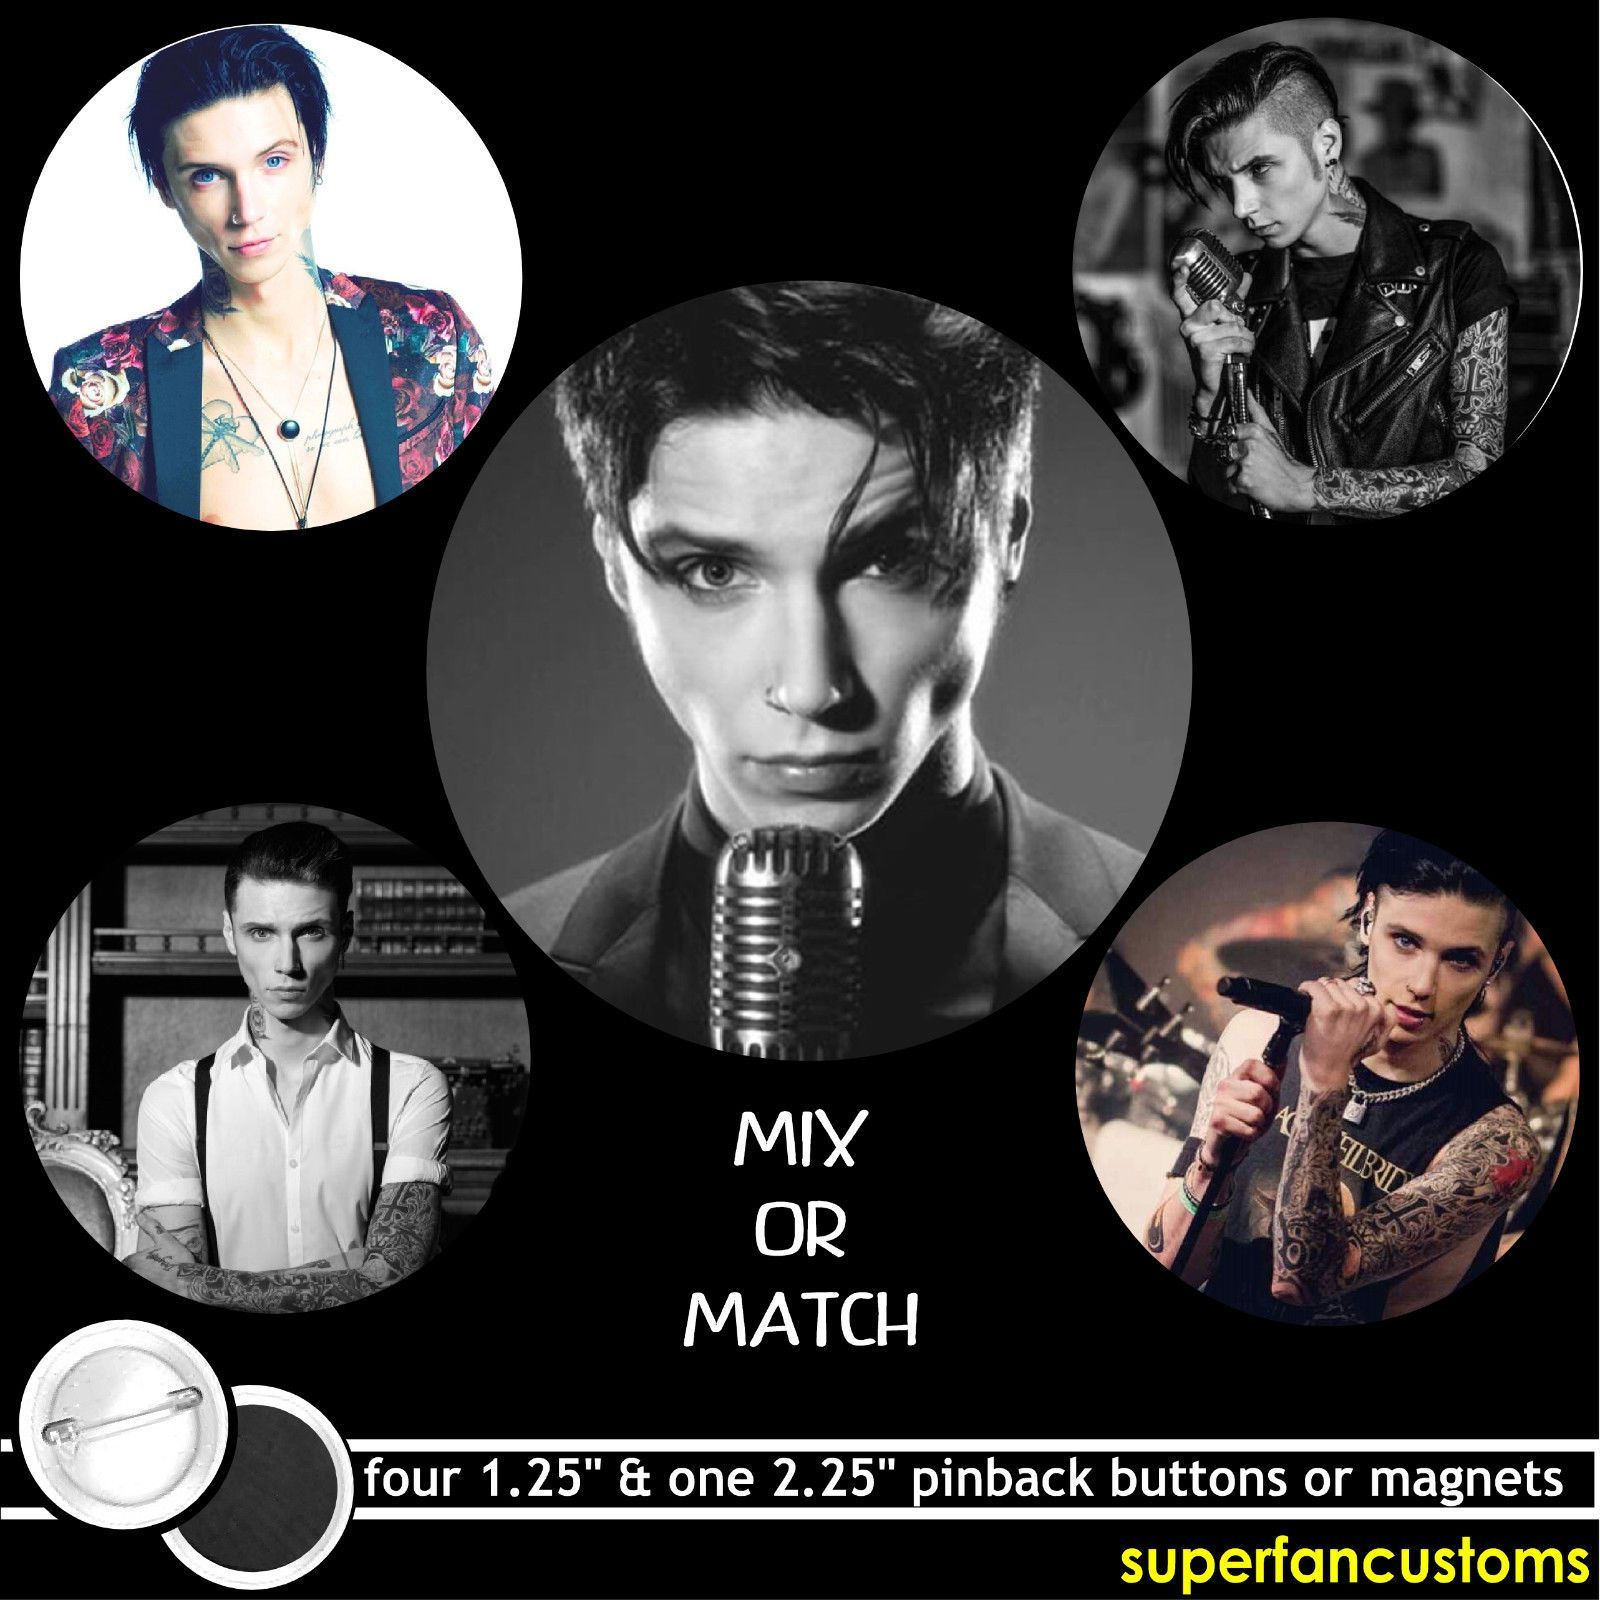 Andy Biersack Set Of 5 Pinback Buttons Or Magnets Black Veil Brides Pins #1512